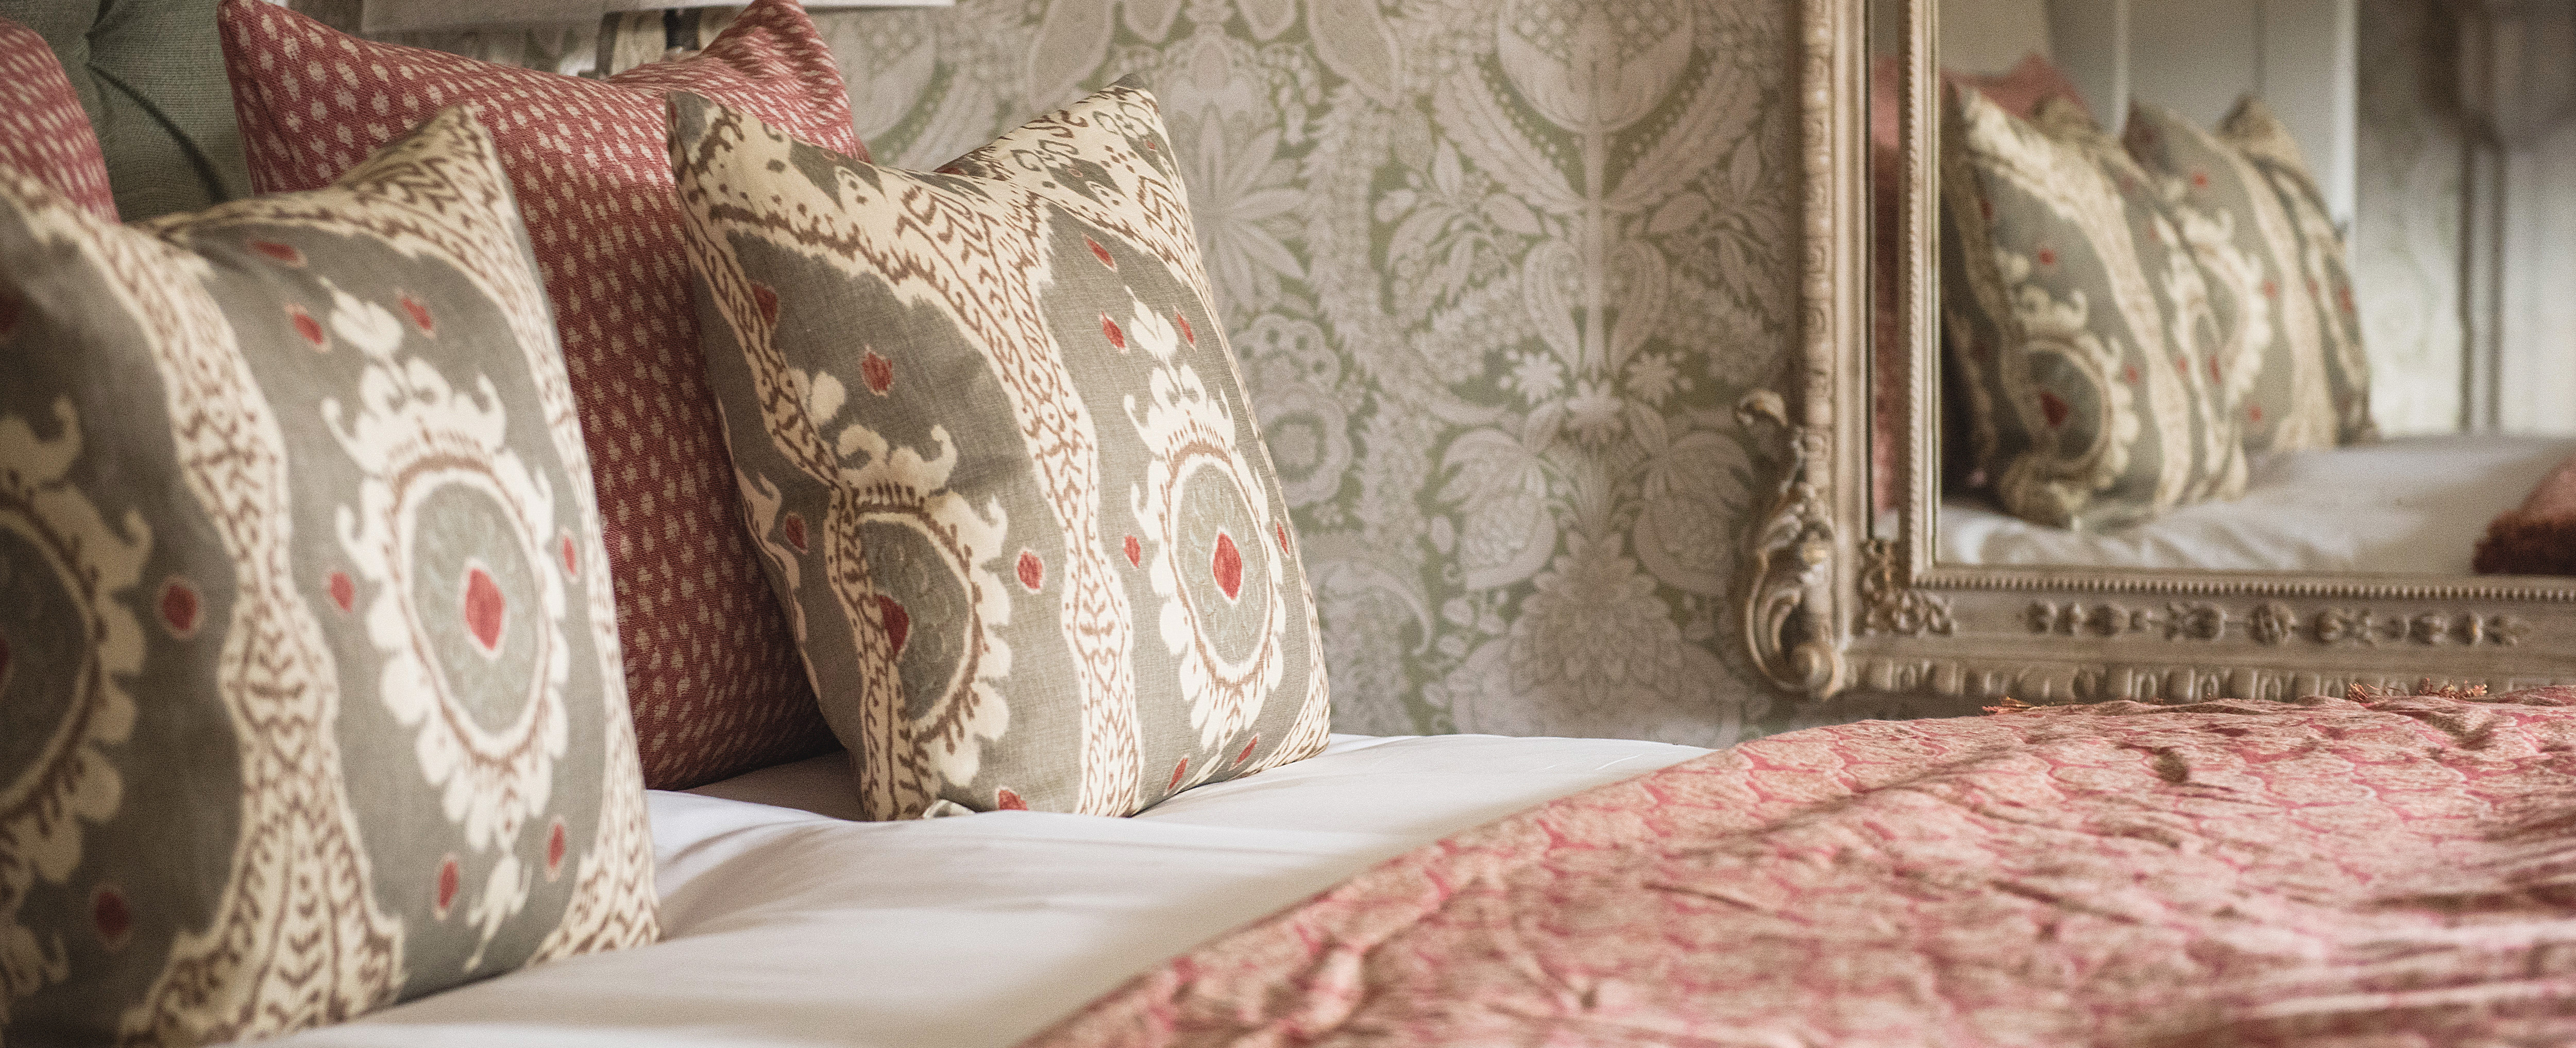 Lewis & Wood makes world-class fabrics and wallpapers at its own mill in Gloucestershire, ensuring short lead times and quality control.